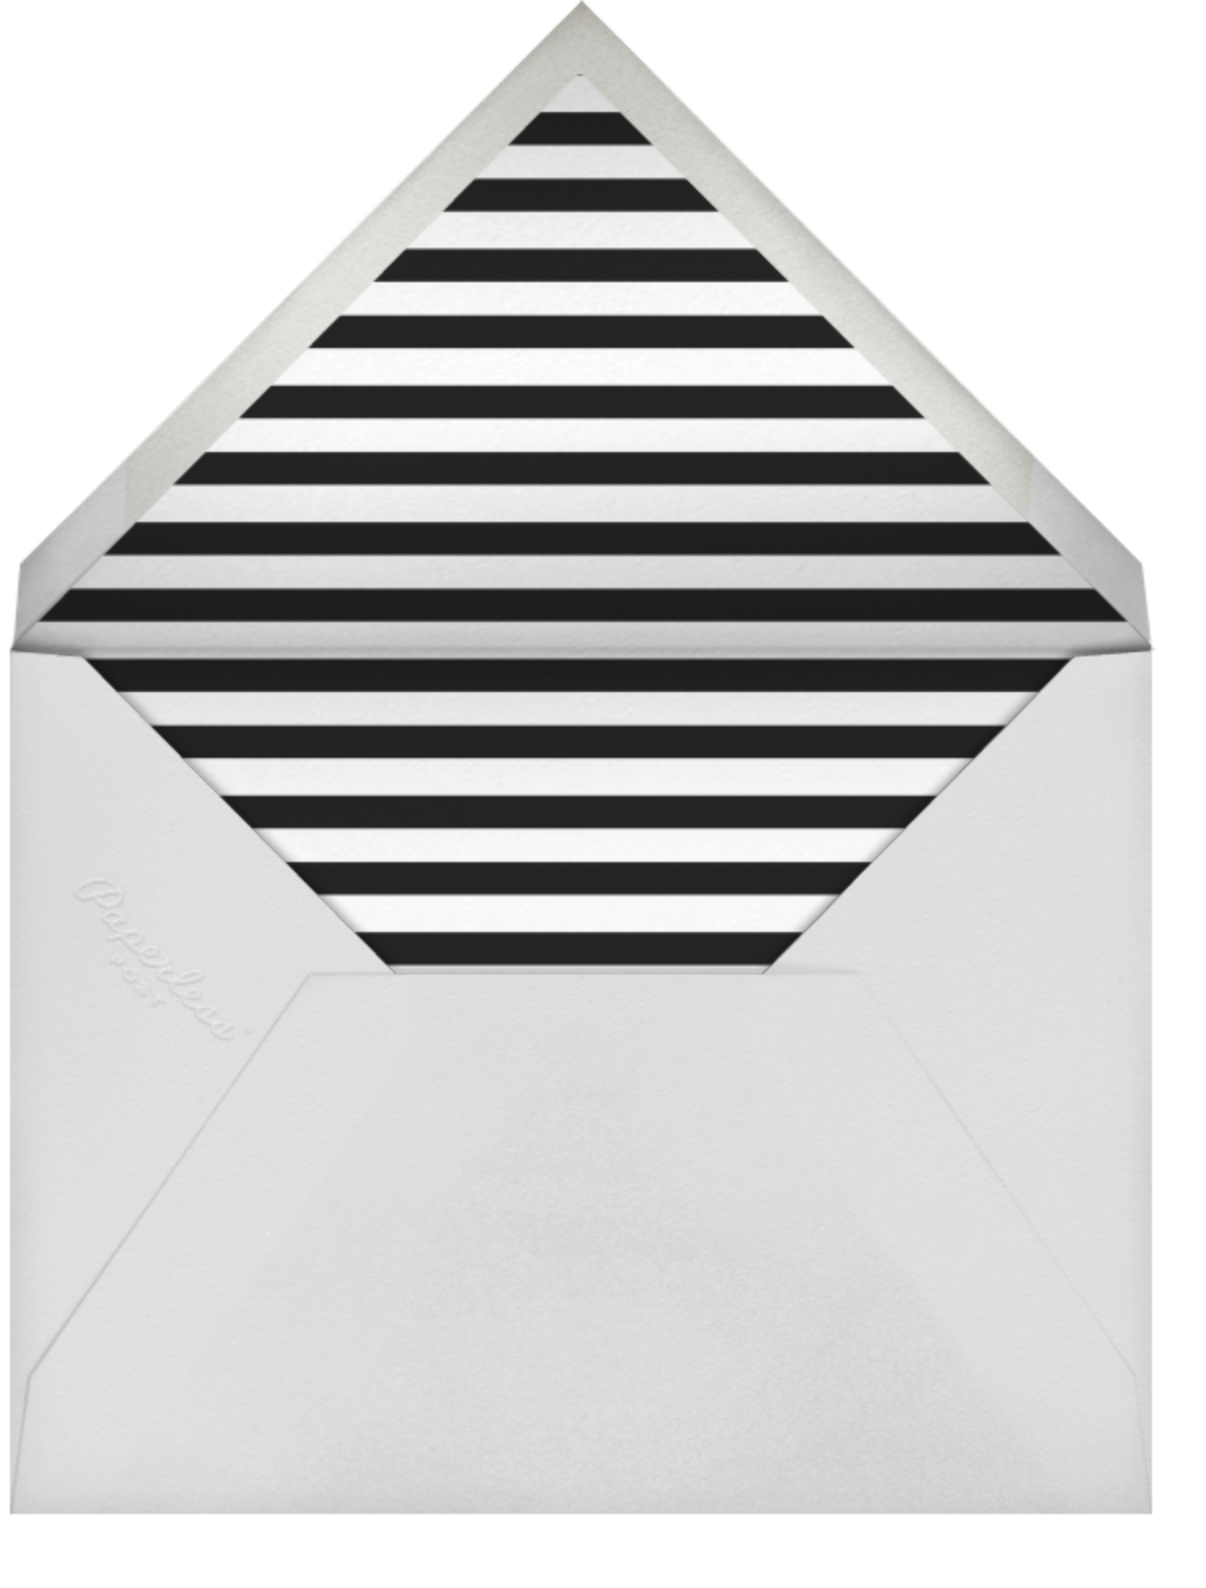 Wrapped Elephant - Silver - kate spade new york - Holiday party - envelope back